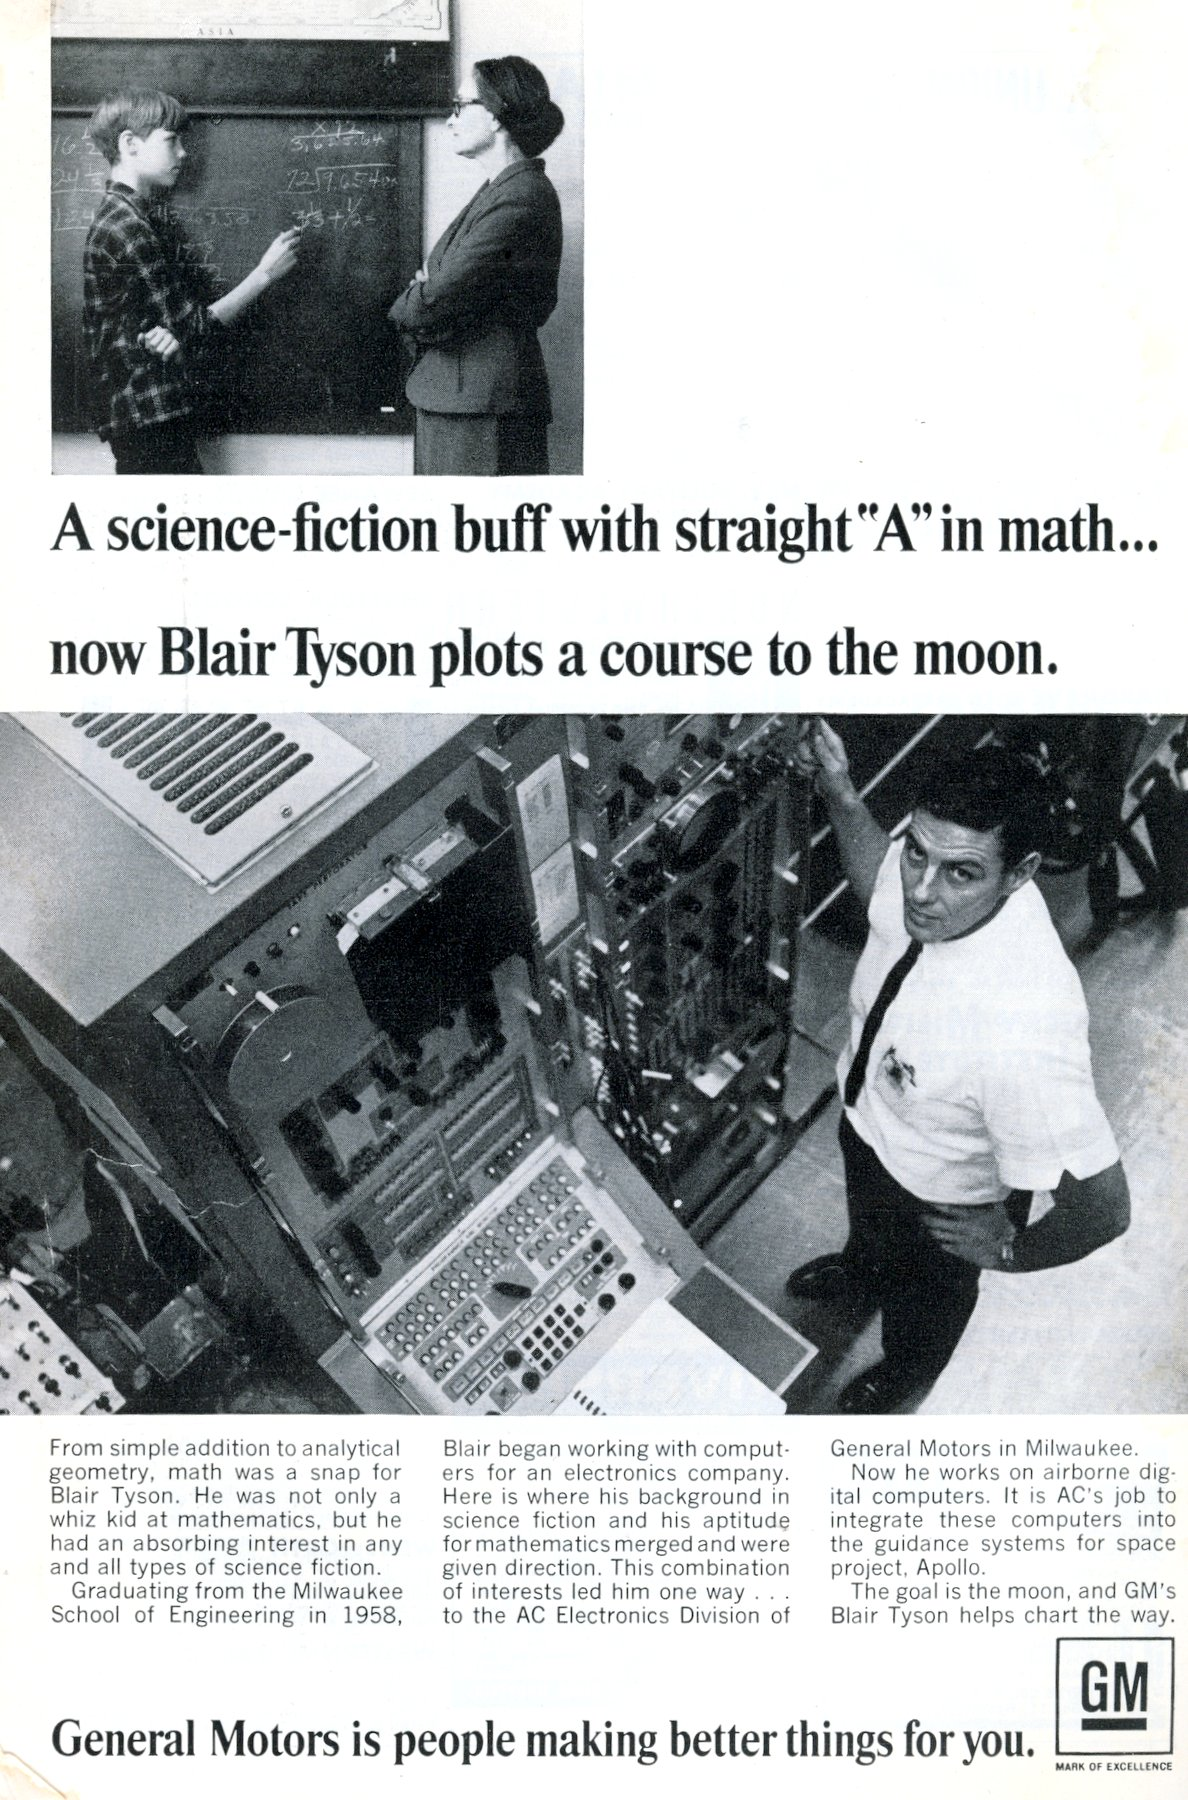 Blair Tyson plots a course to the moon (1967)